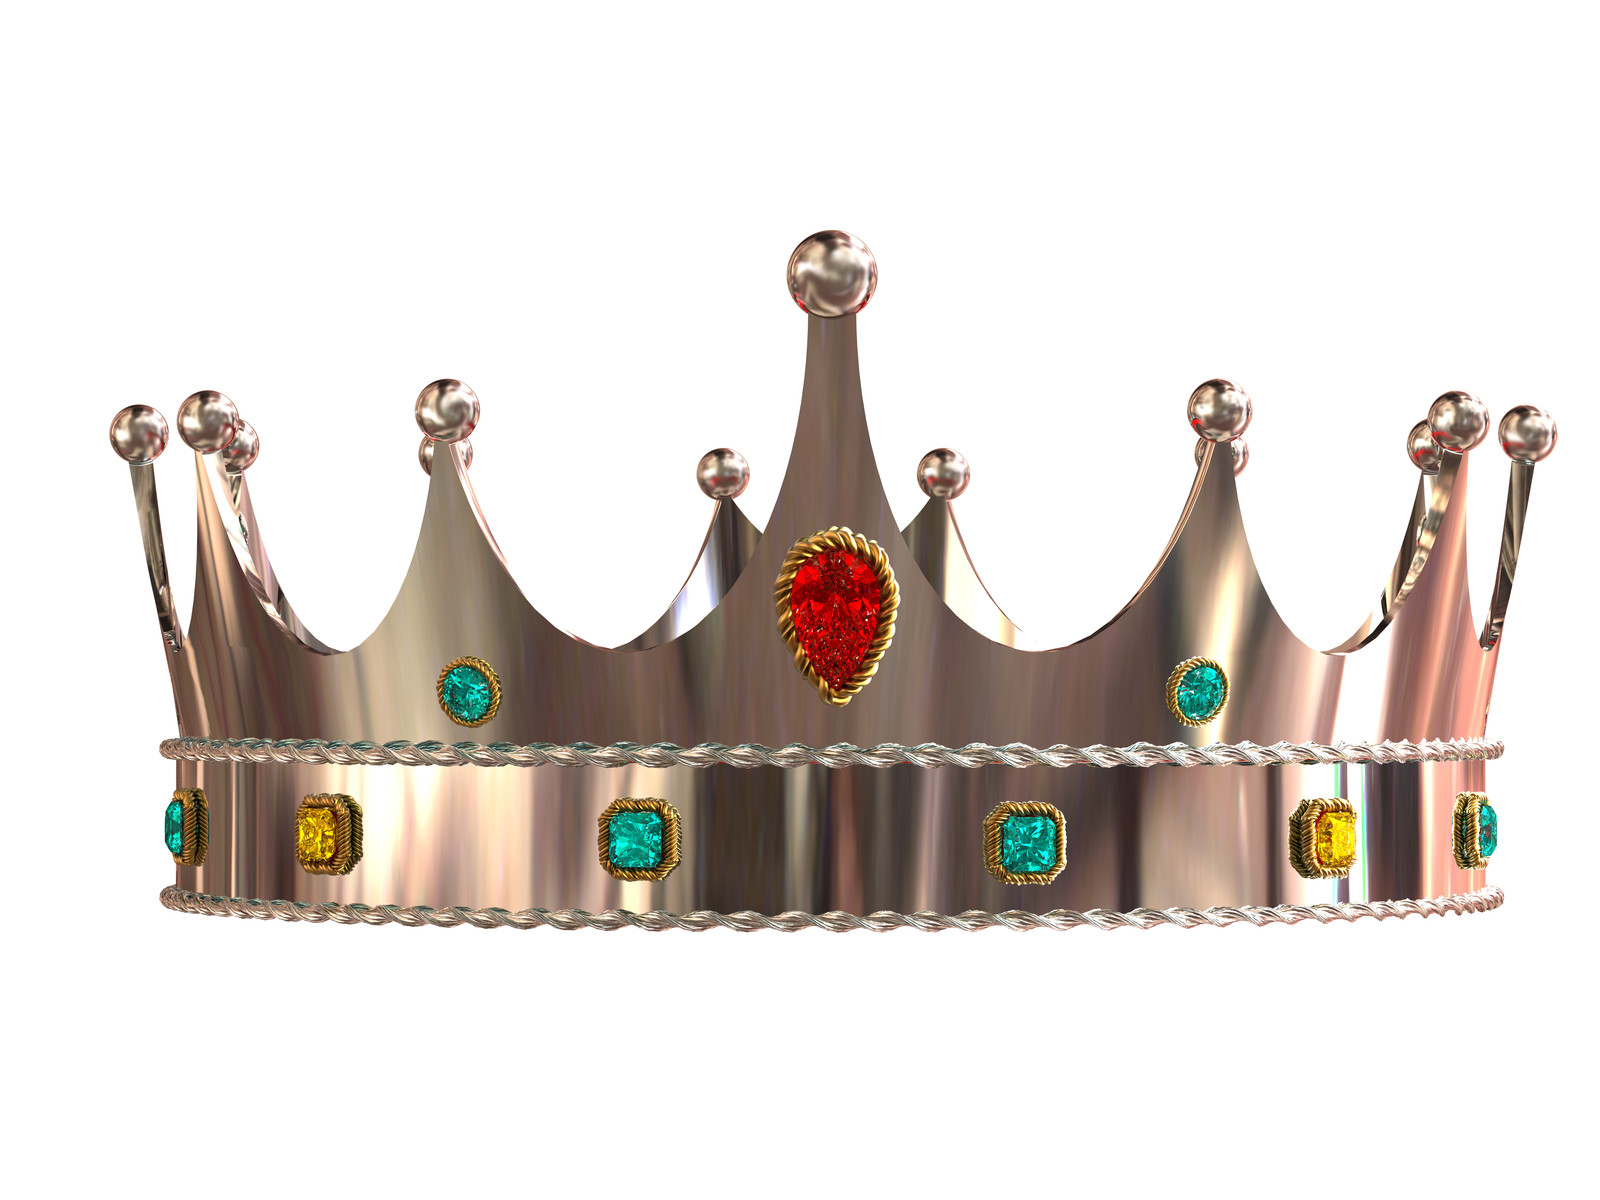 Crown from Canstockphoto